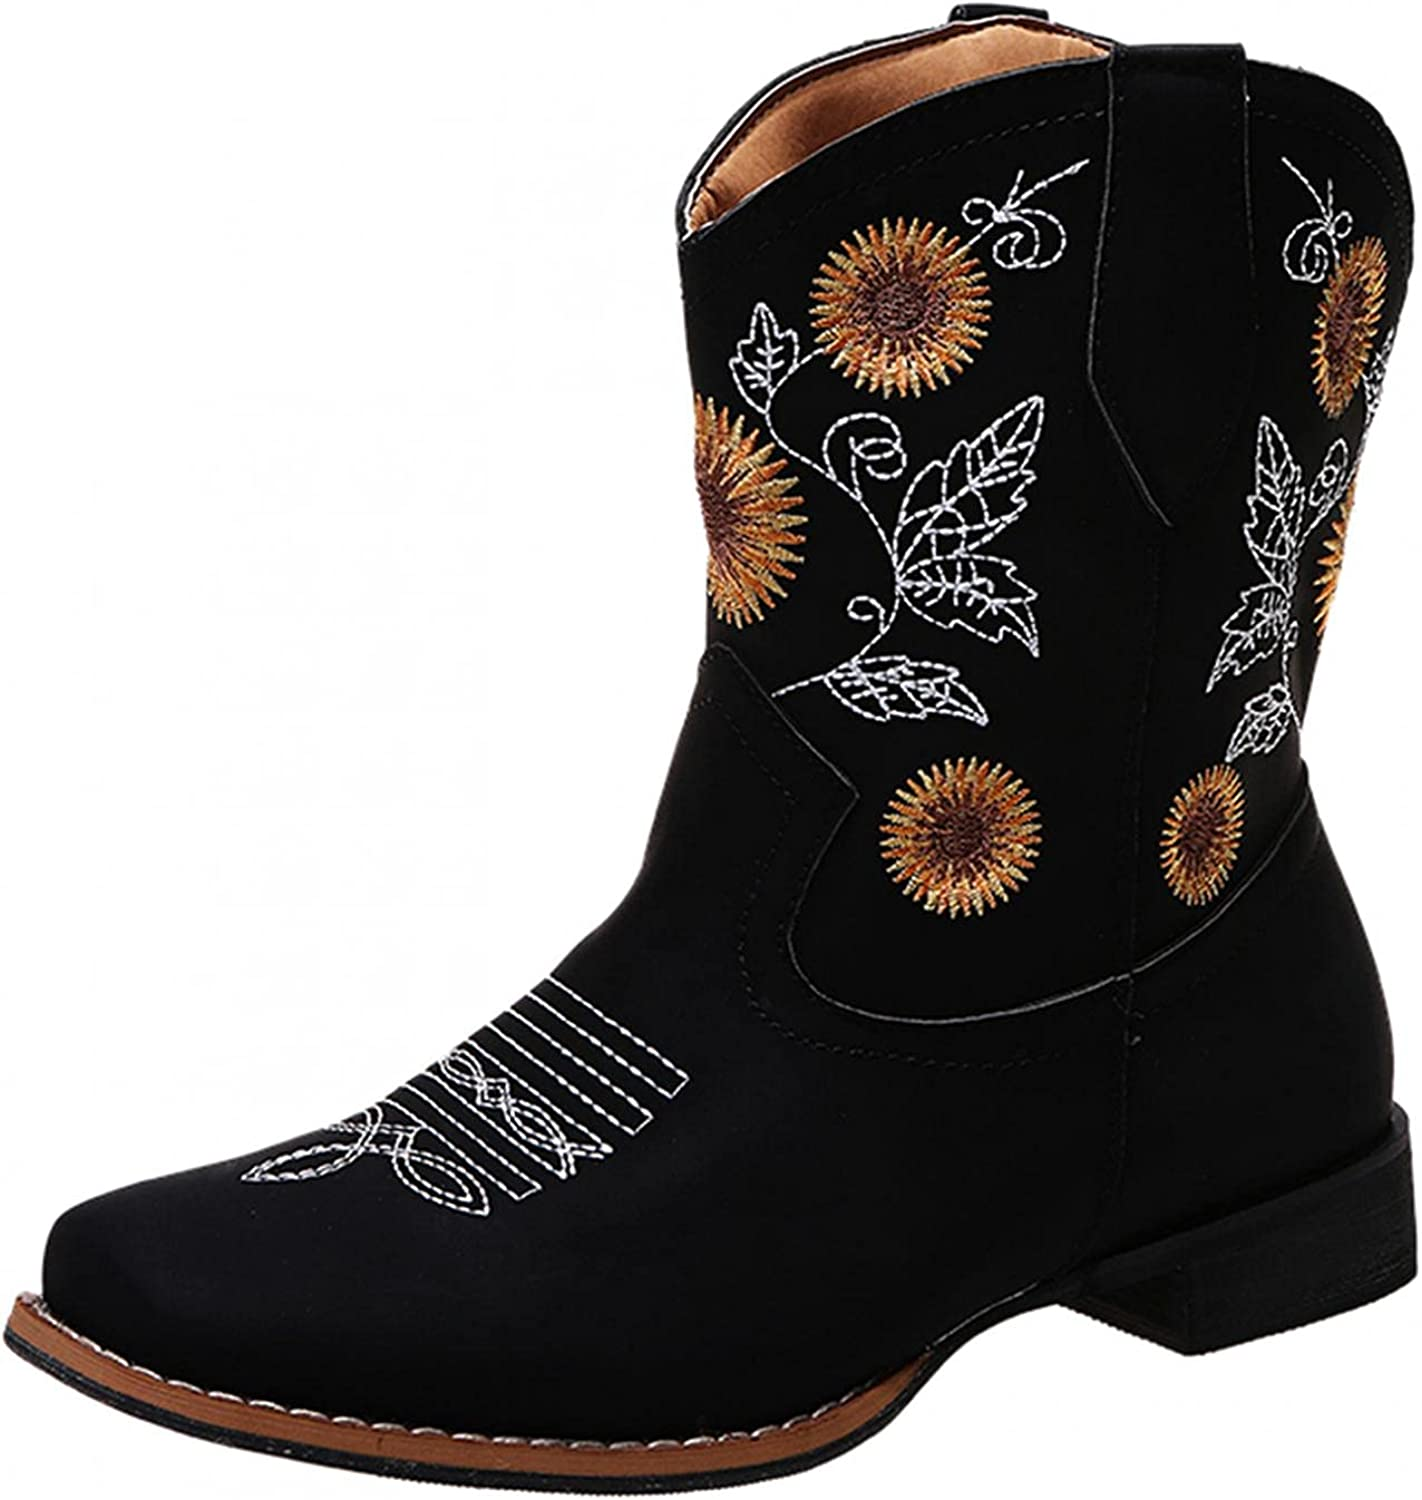 AODONG Western Boots for Women Sunflowers Embroidery Cowboy Boots Mid Calf Chunky Heel Retro Square Toe Pull On Boots